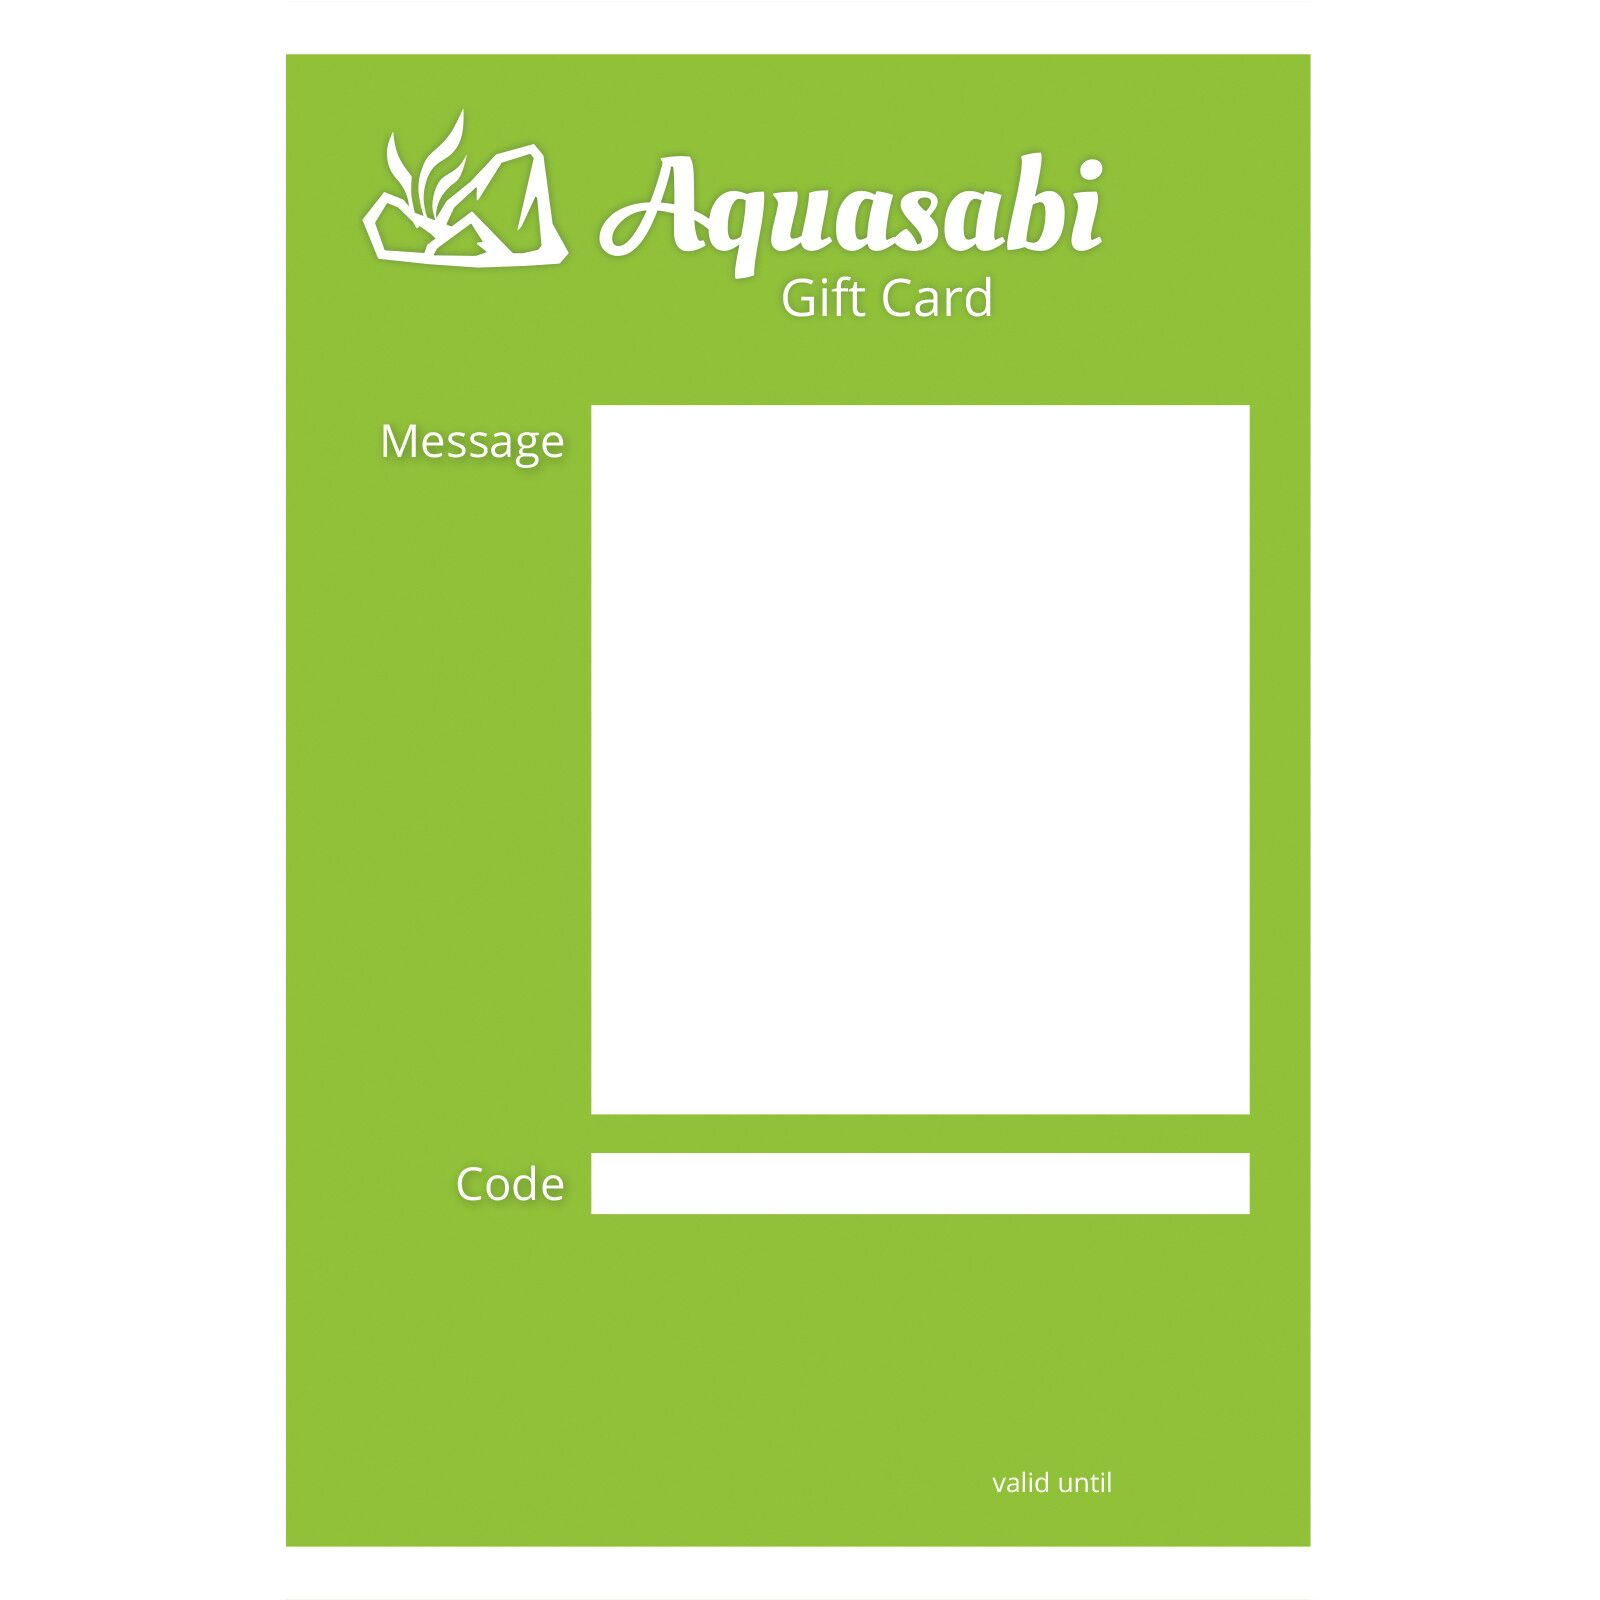 Aquasabi - Gift Card